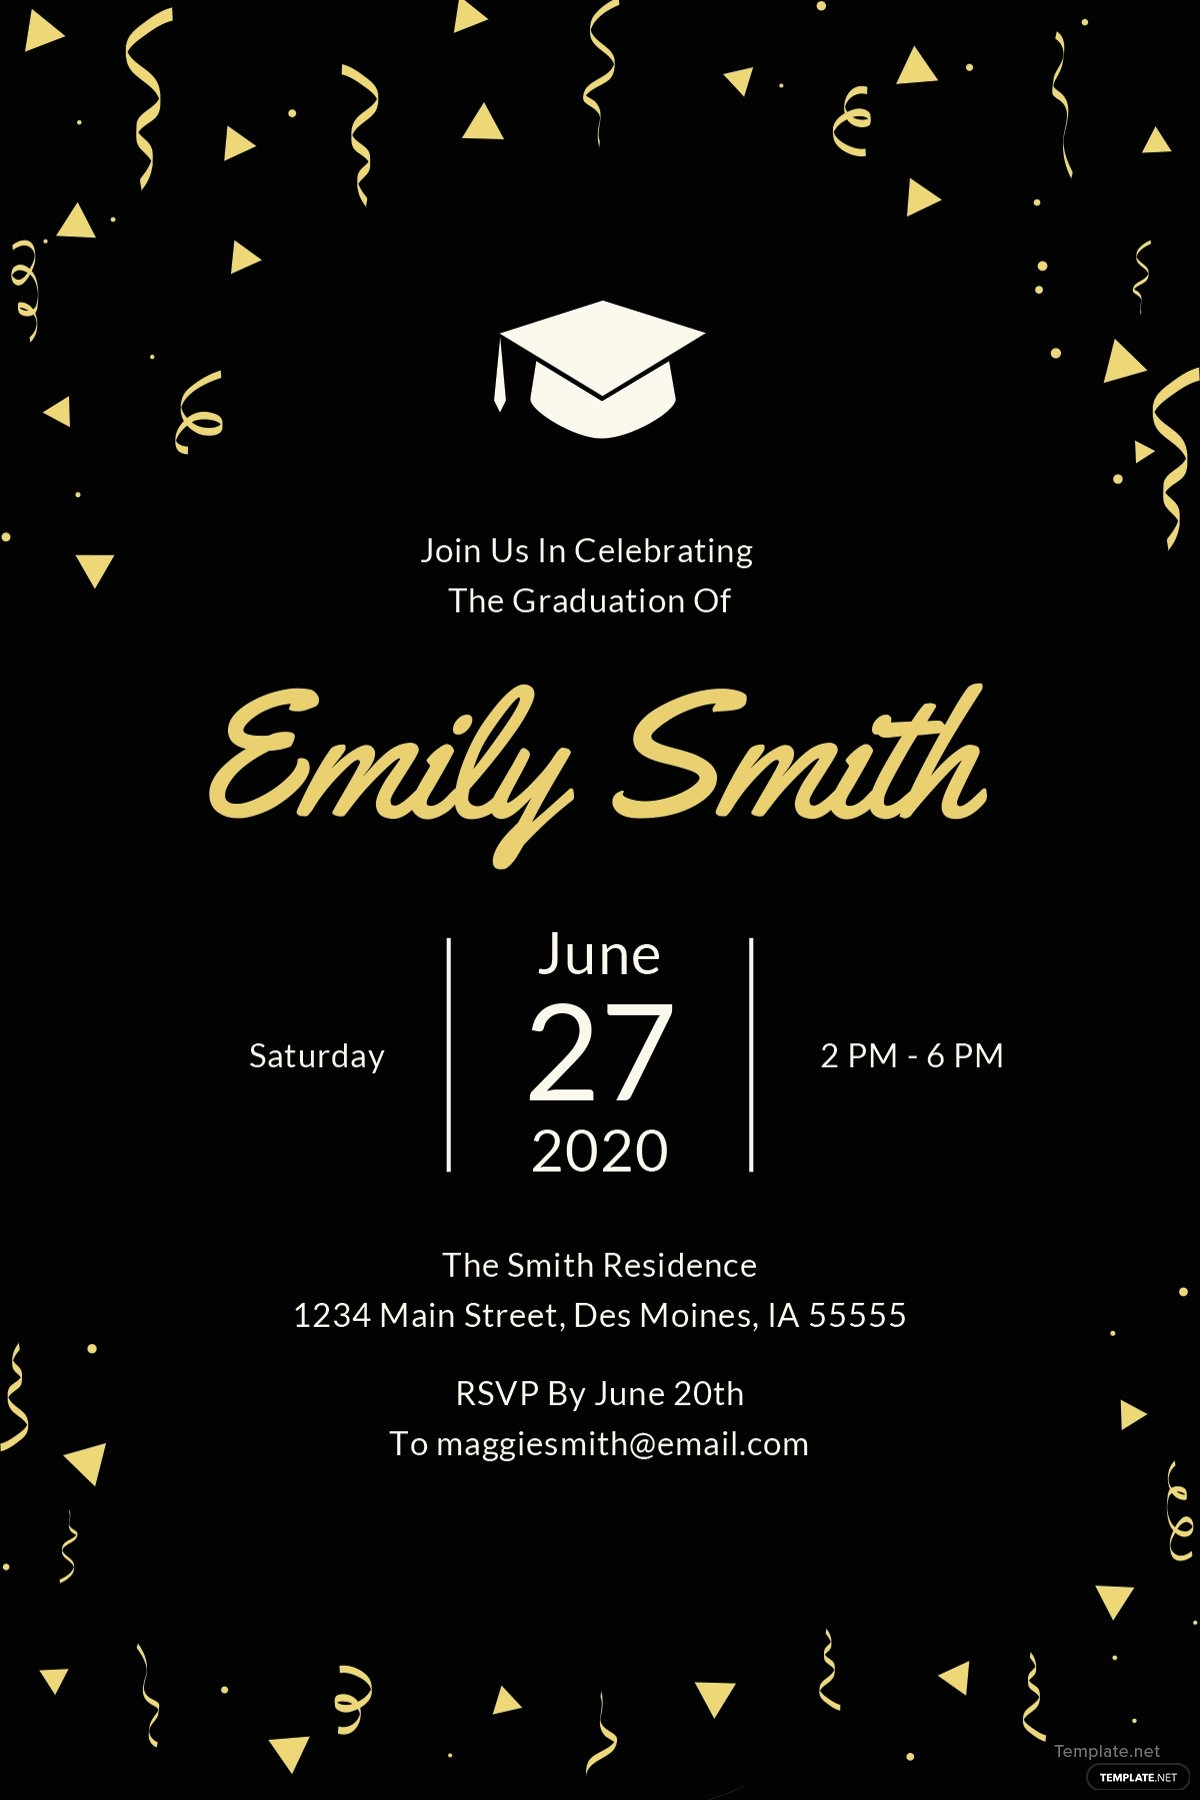 Graduation Party Invitation Template Free Inspirational Free Graduation Invitation Template In Microsoft Word